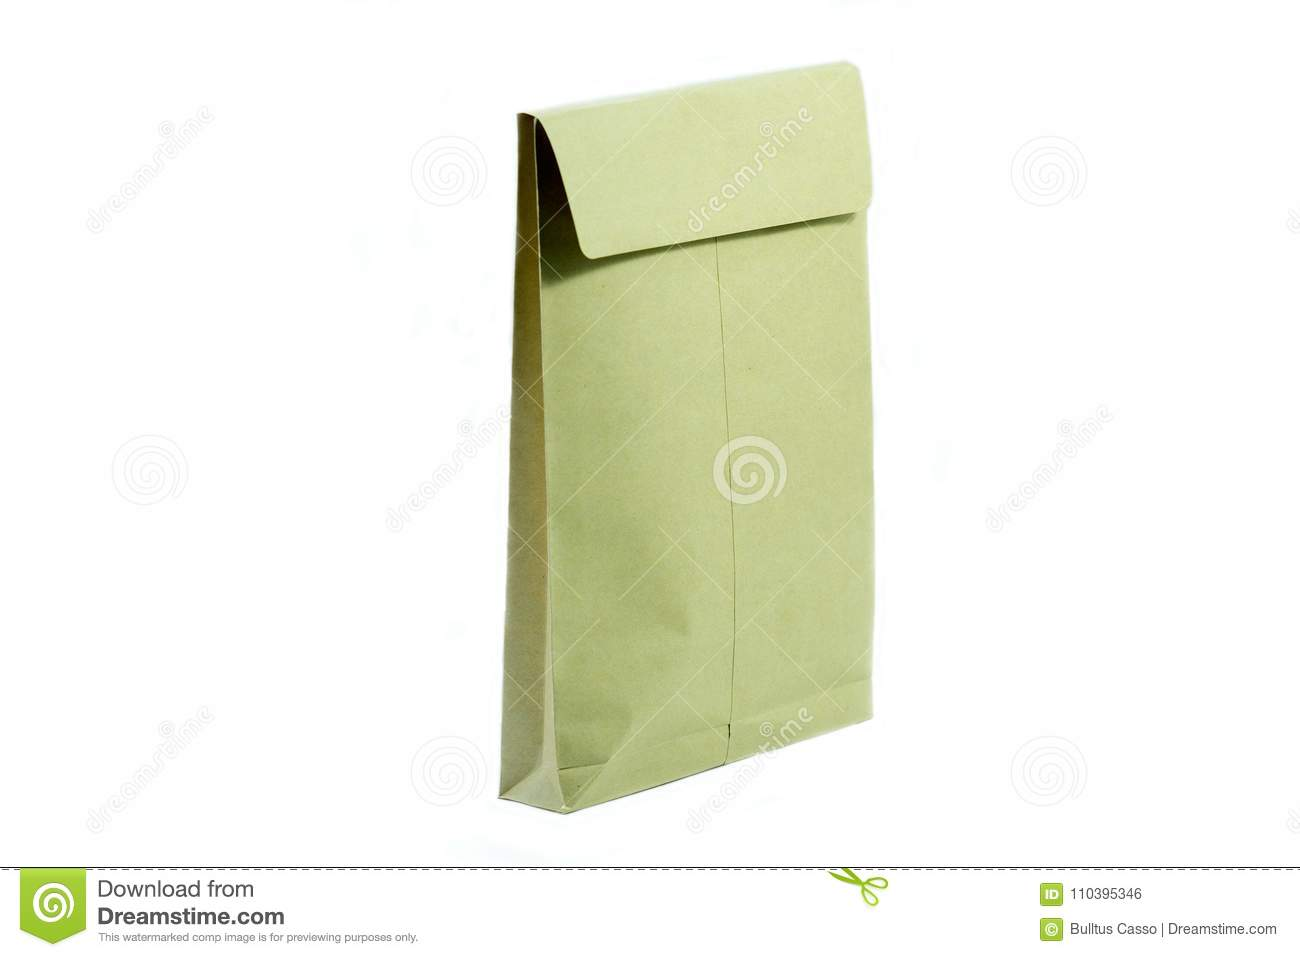 Envelope de Brown para o original no branco isolado